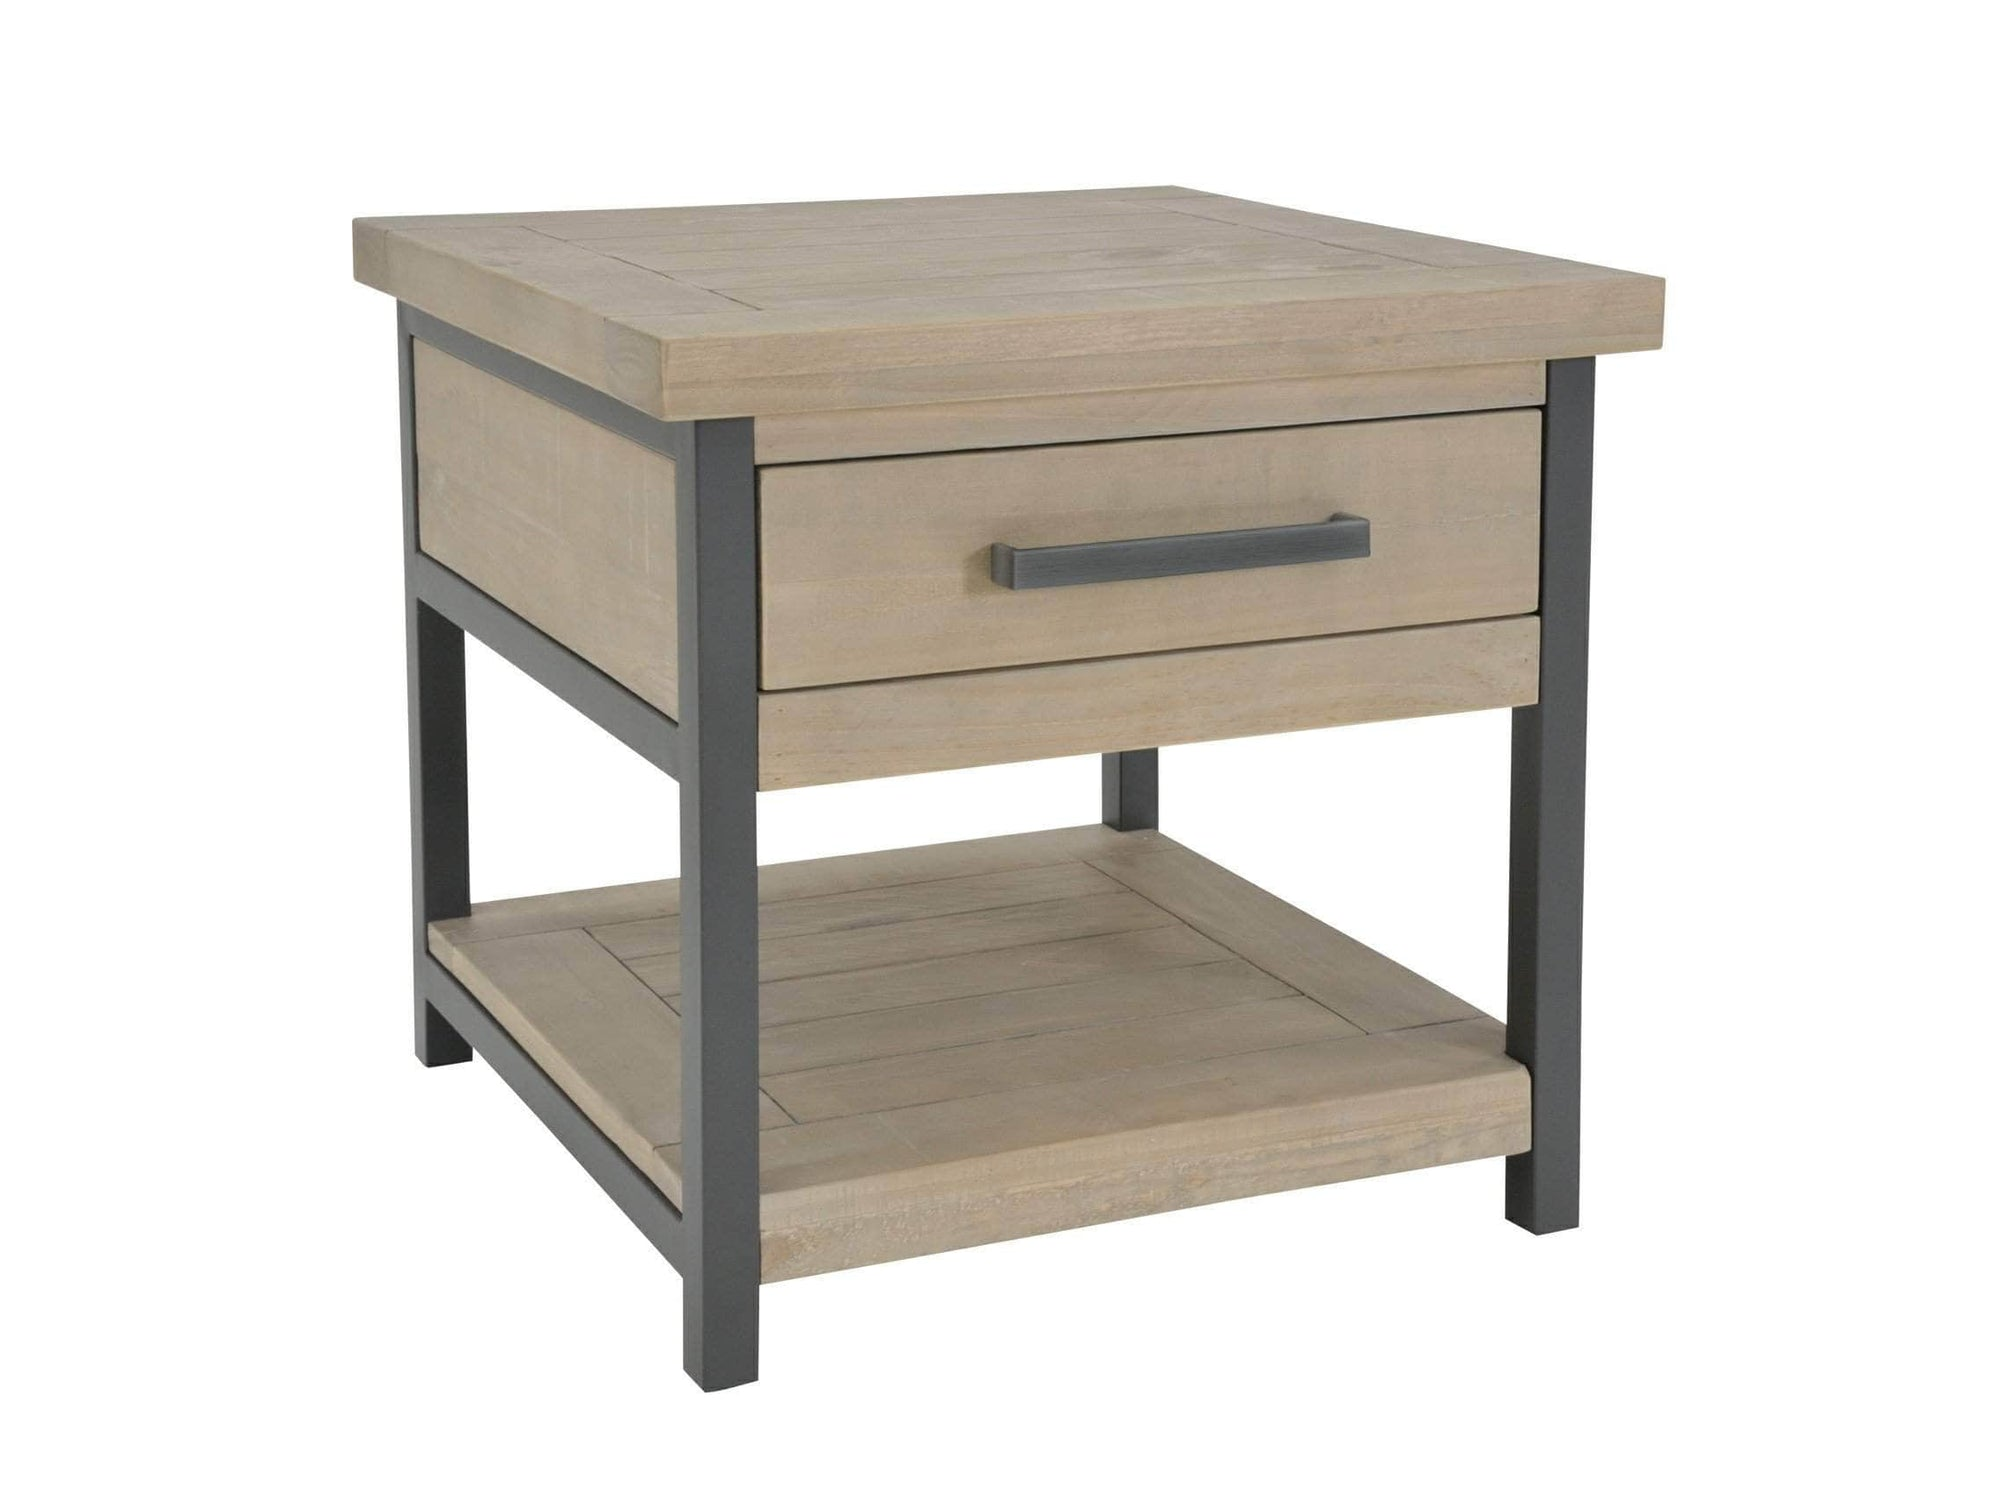 Industrial design side table with large drawer and shelf underneath